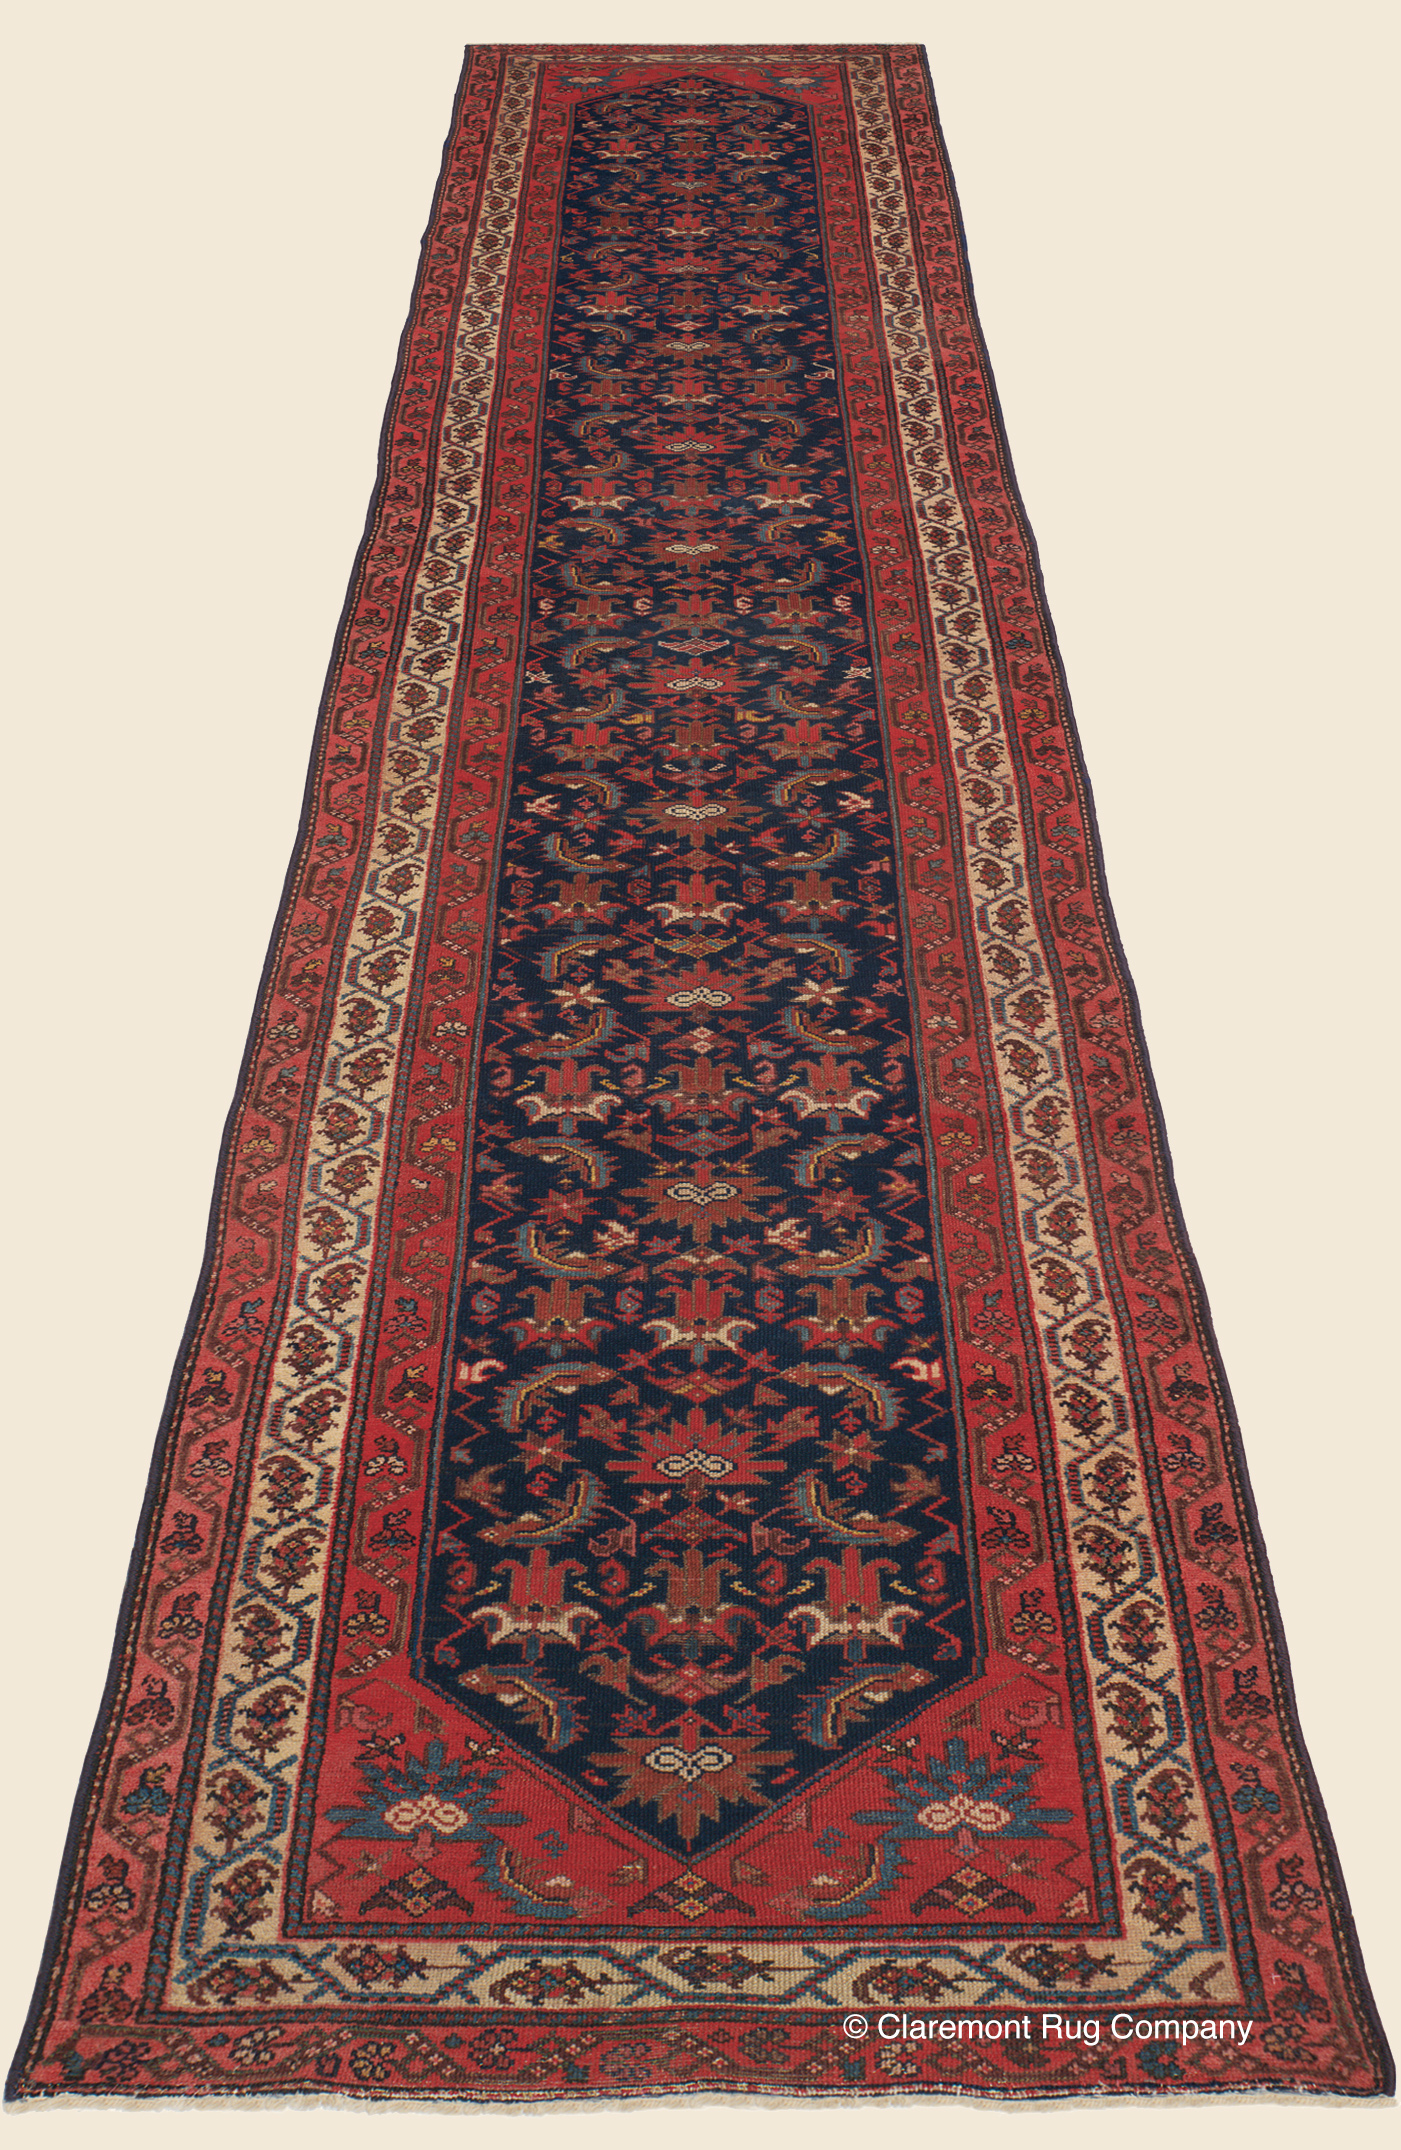 Decorative Persian Malayer Runner with tribal motifs and an allover Herati pattern in jewel tones